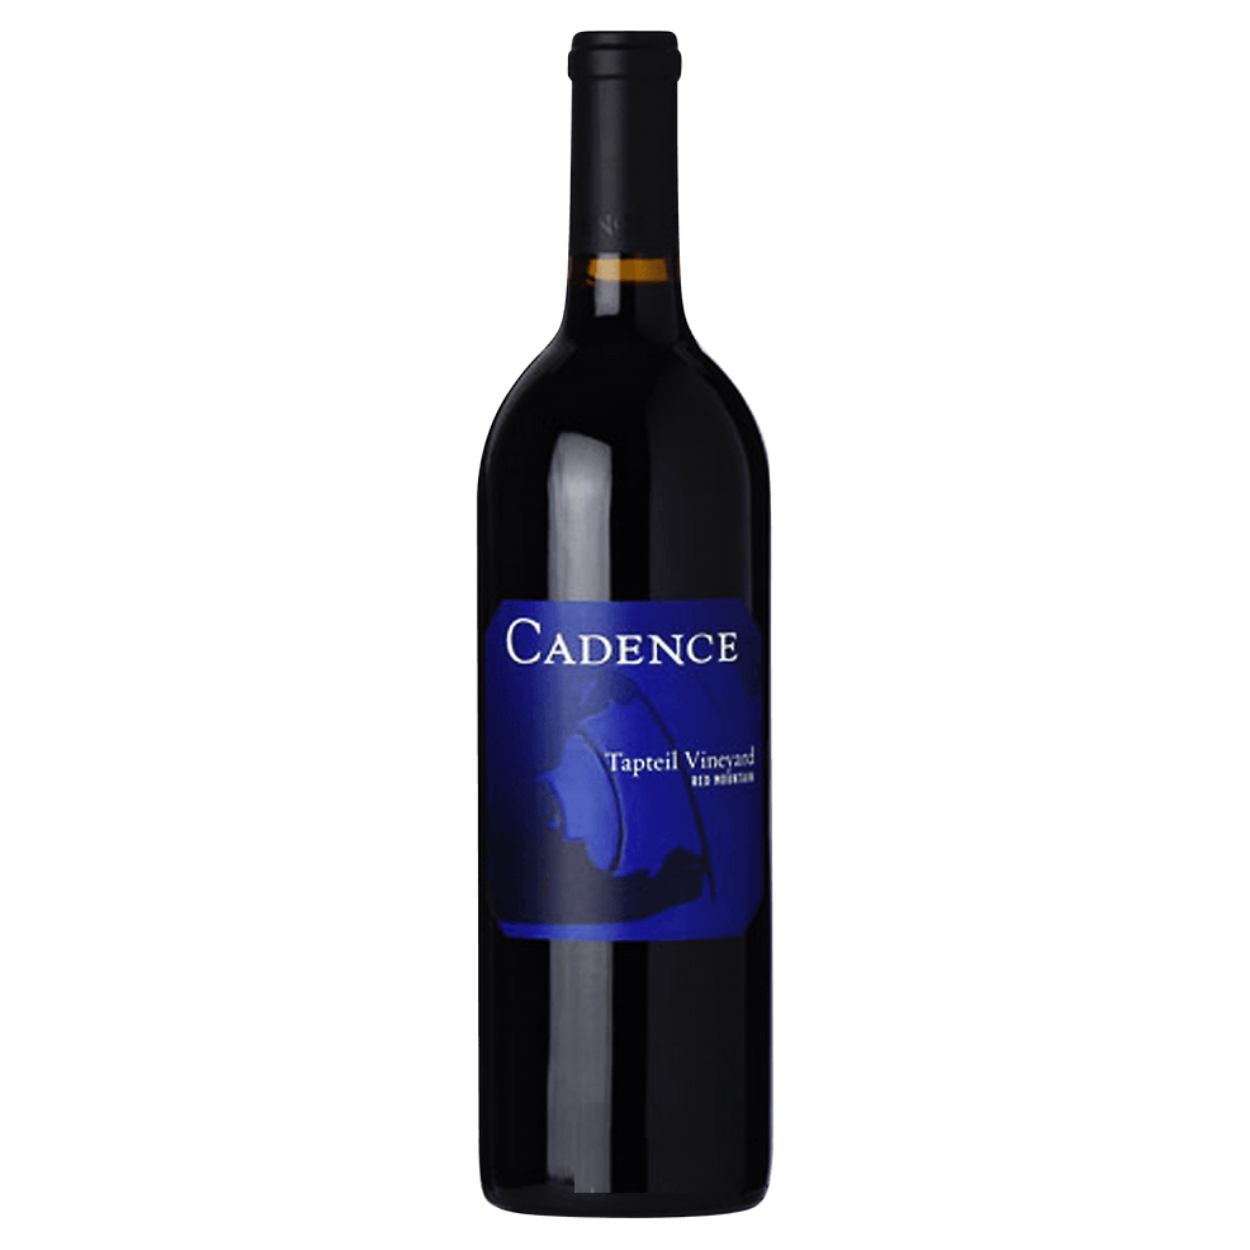 2016 Cadence Winery Tapteil Vineyard Red Columbia Valley Washington USA - The Wine Connection